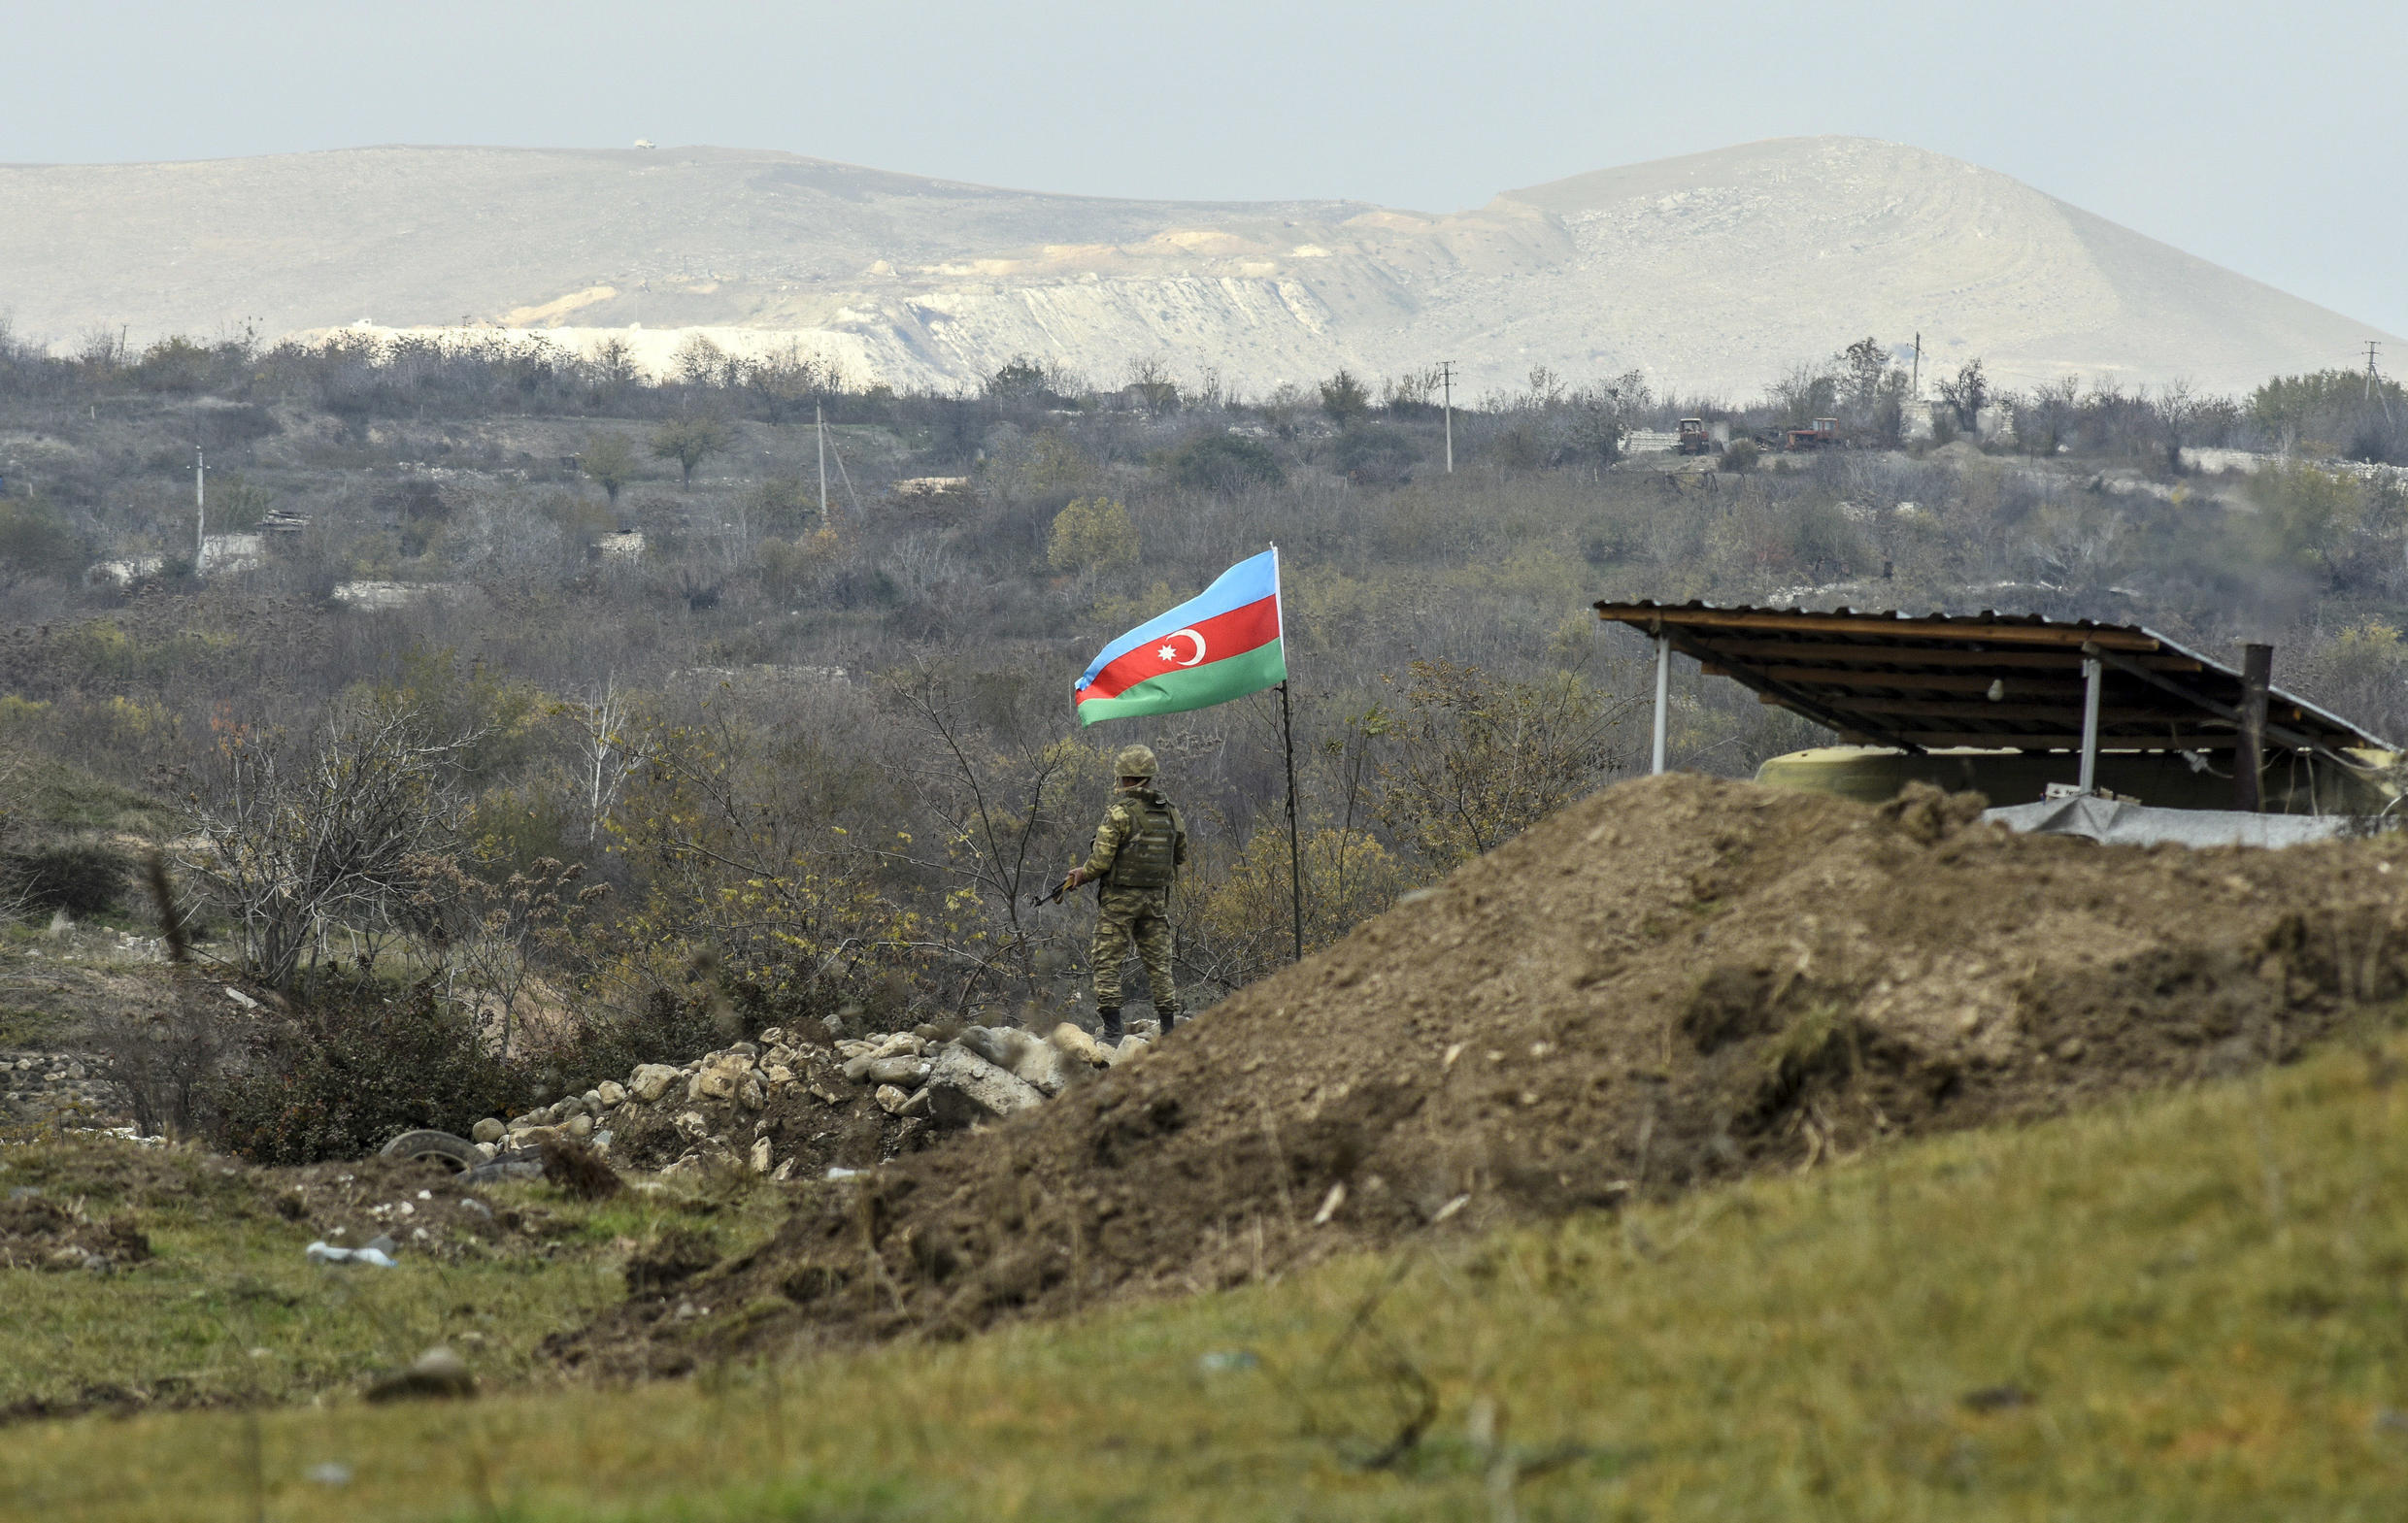 An Azerbaijani soldier stands guard at a checkpoint on a road entering Fizuli from Hadrut on December 2, 2020, a day after Baku's army entered the final district given up by Armenia under a peace deal that ended weeks of fighting over the disputed Nagorno-Karabakh region